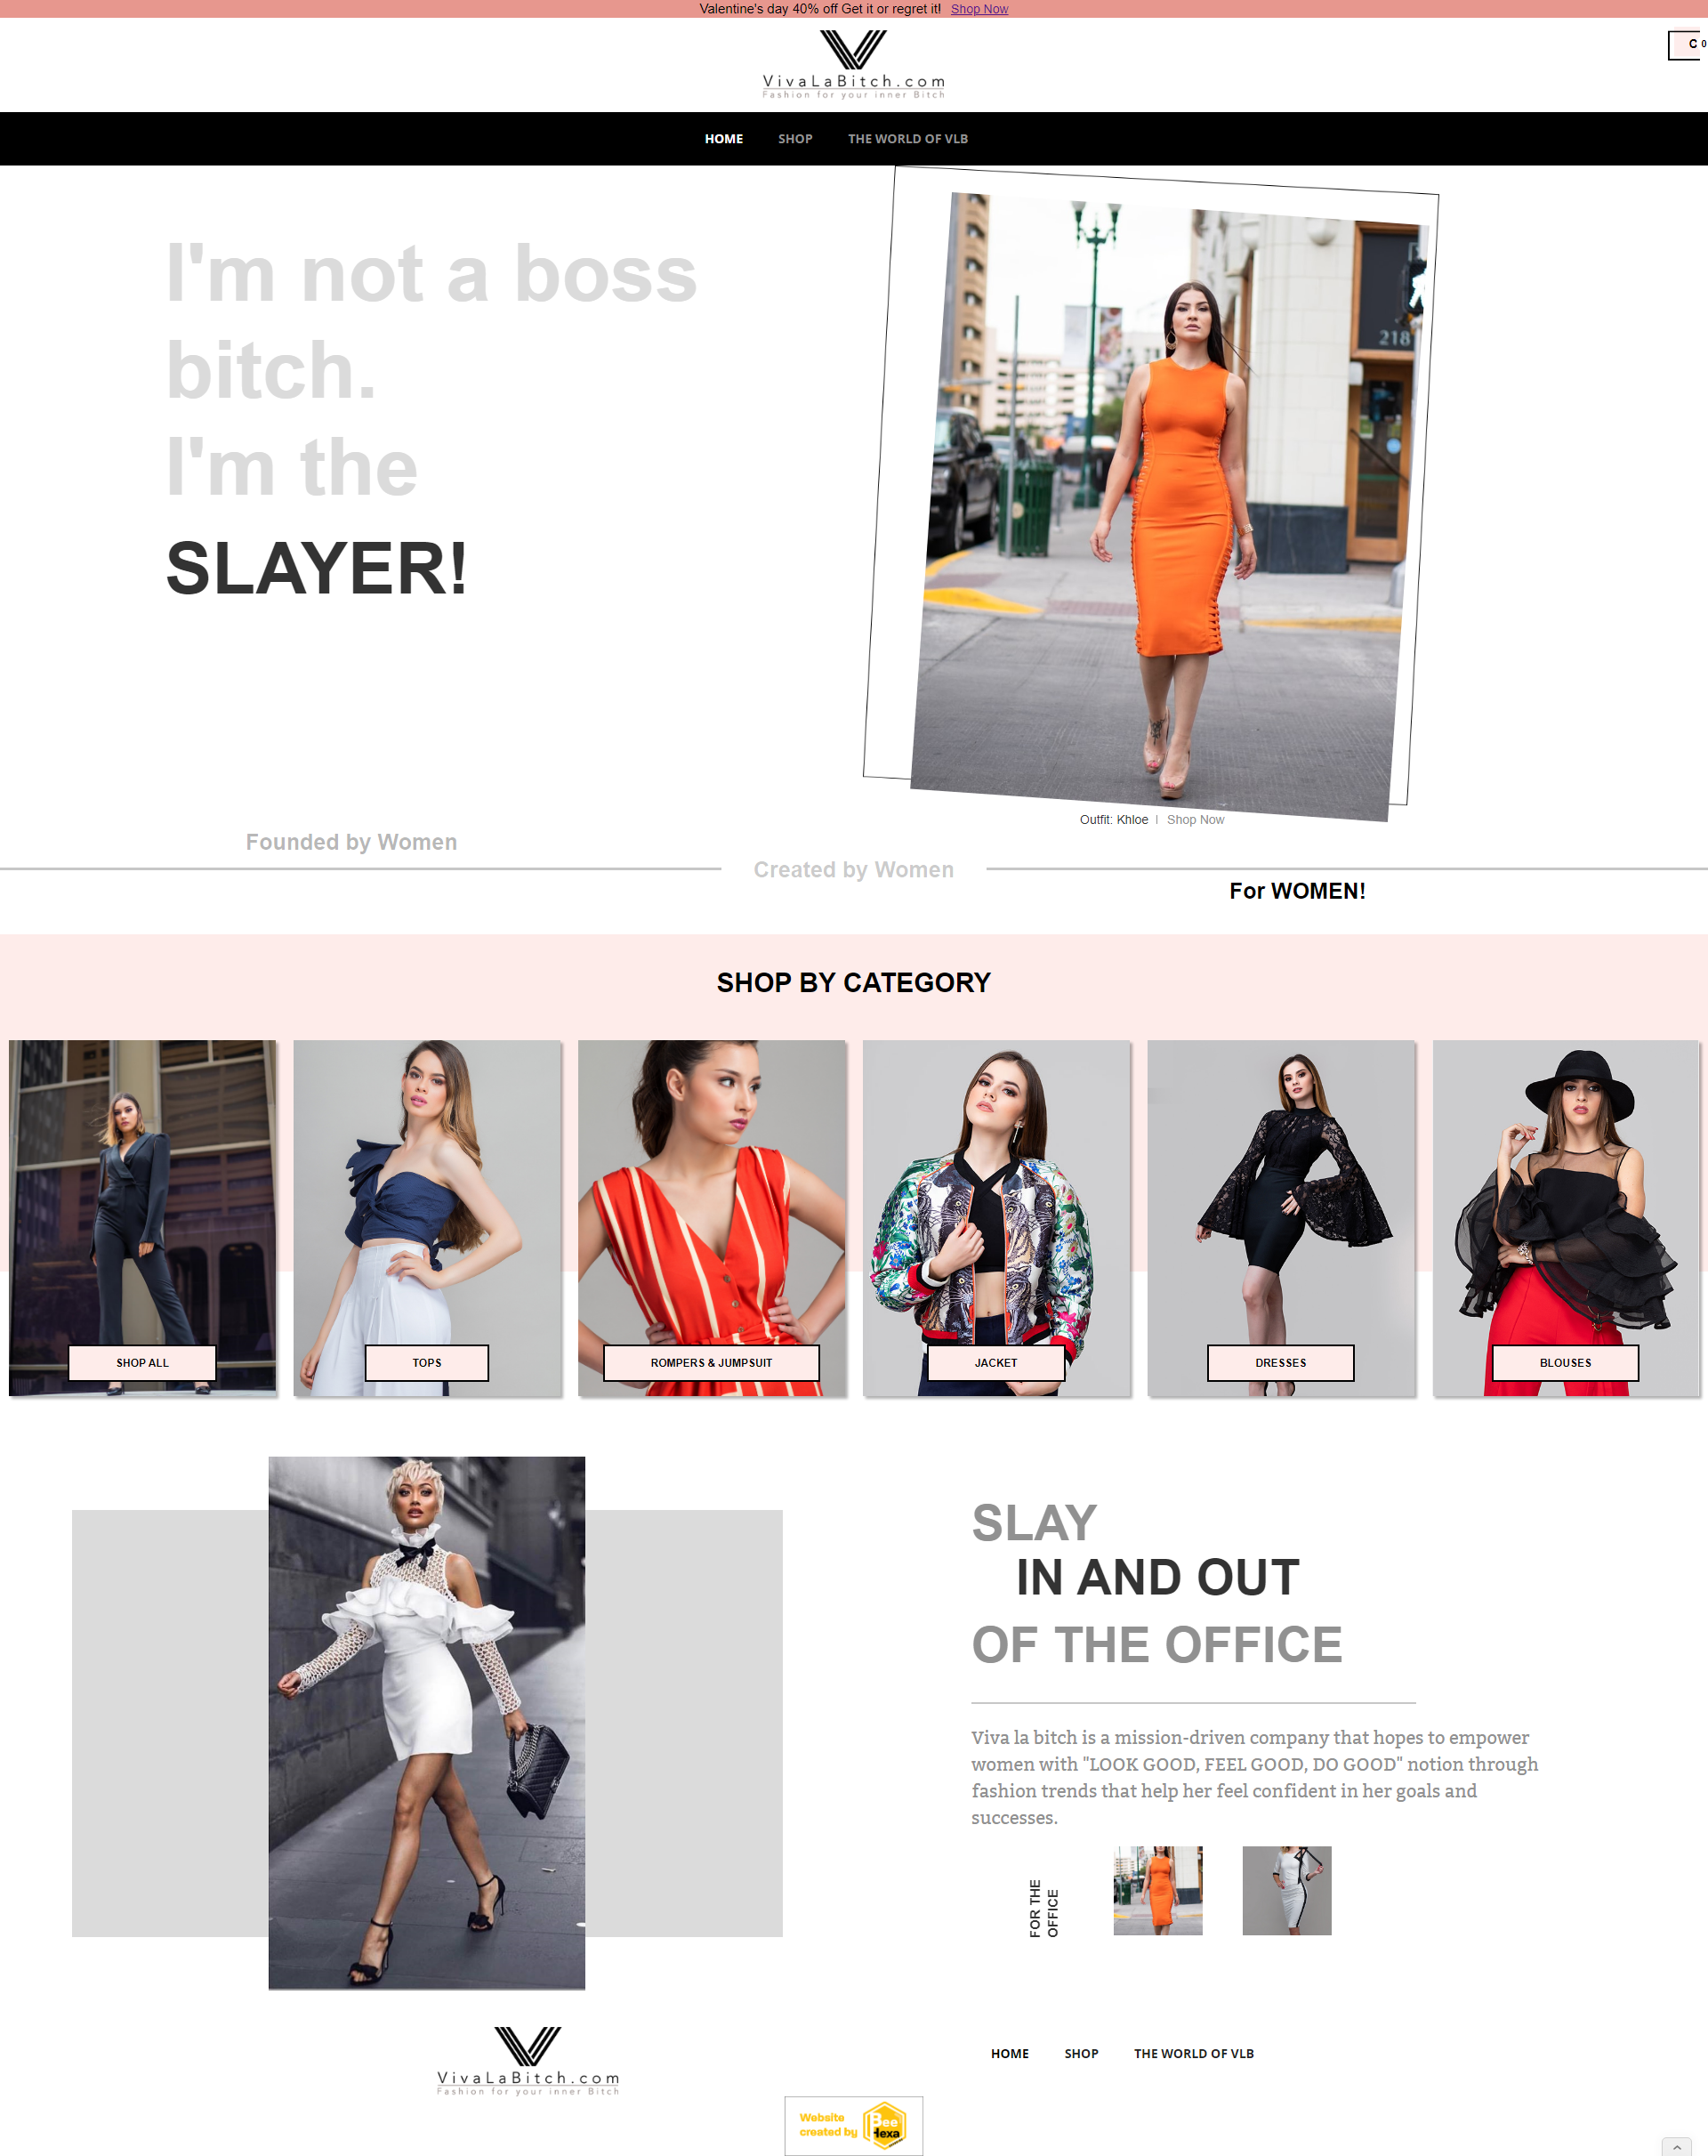 Ecommerce Fashion Web Design Showcase